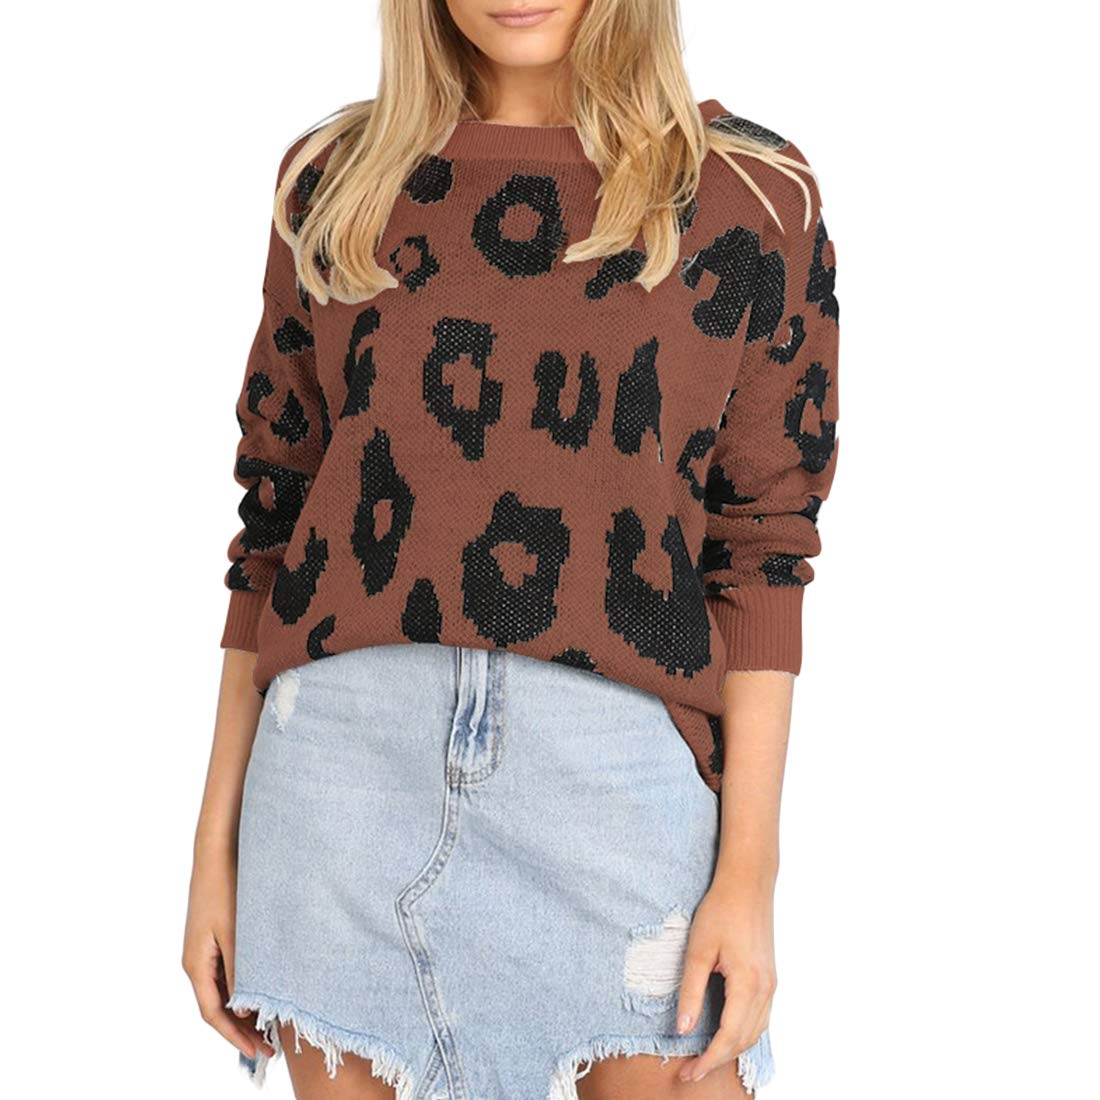 MOLFROA Womens Winter Long Sleeve Leopard Print Knits Loose Crew Neck Sweaters